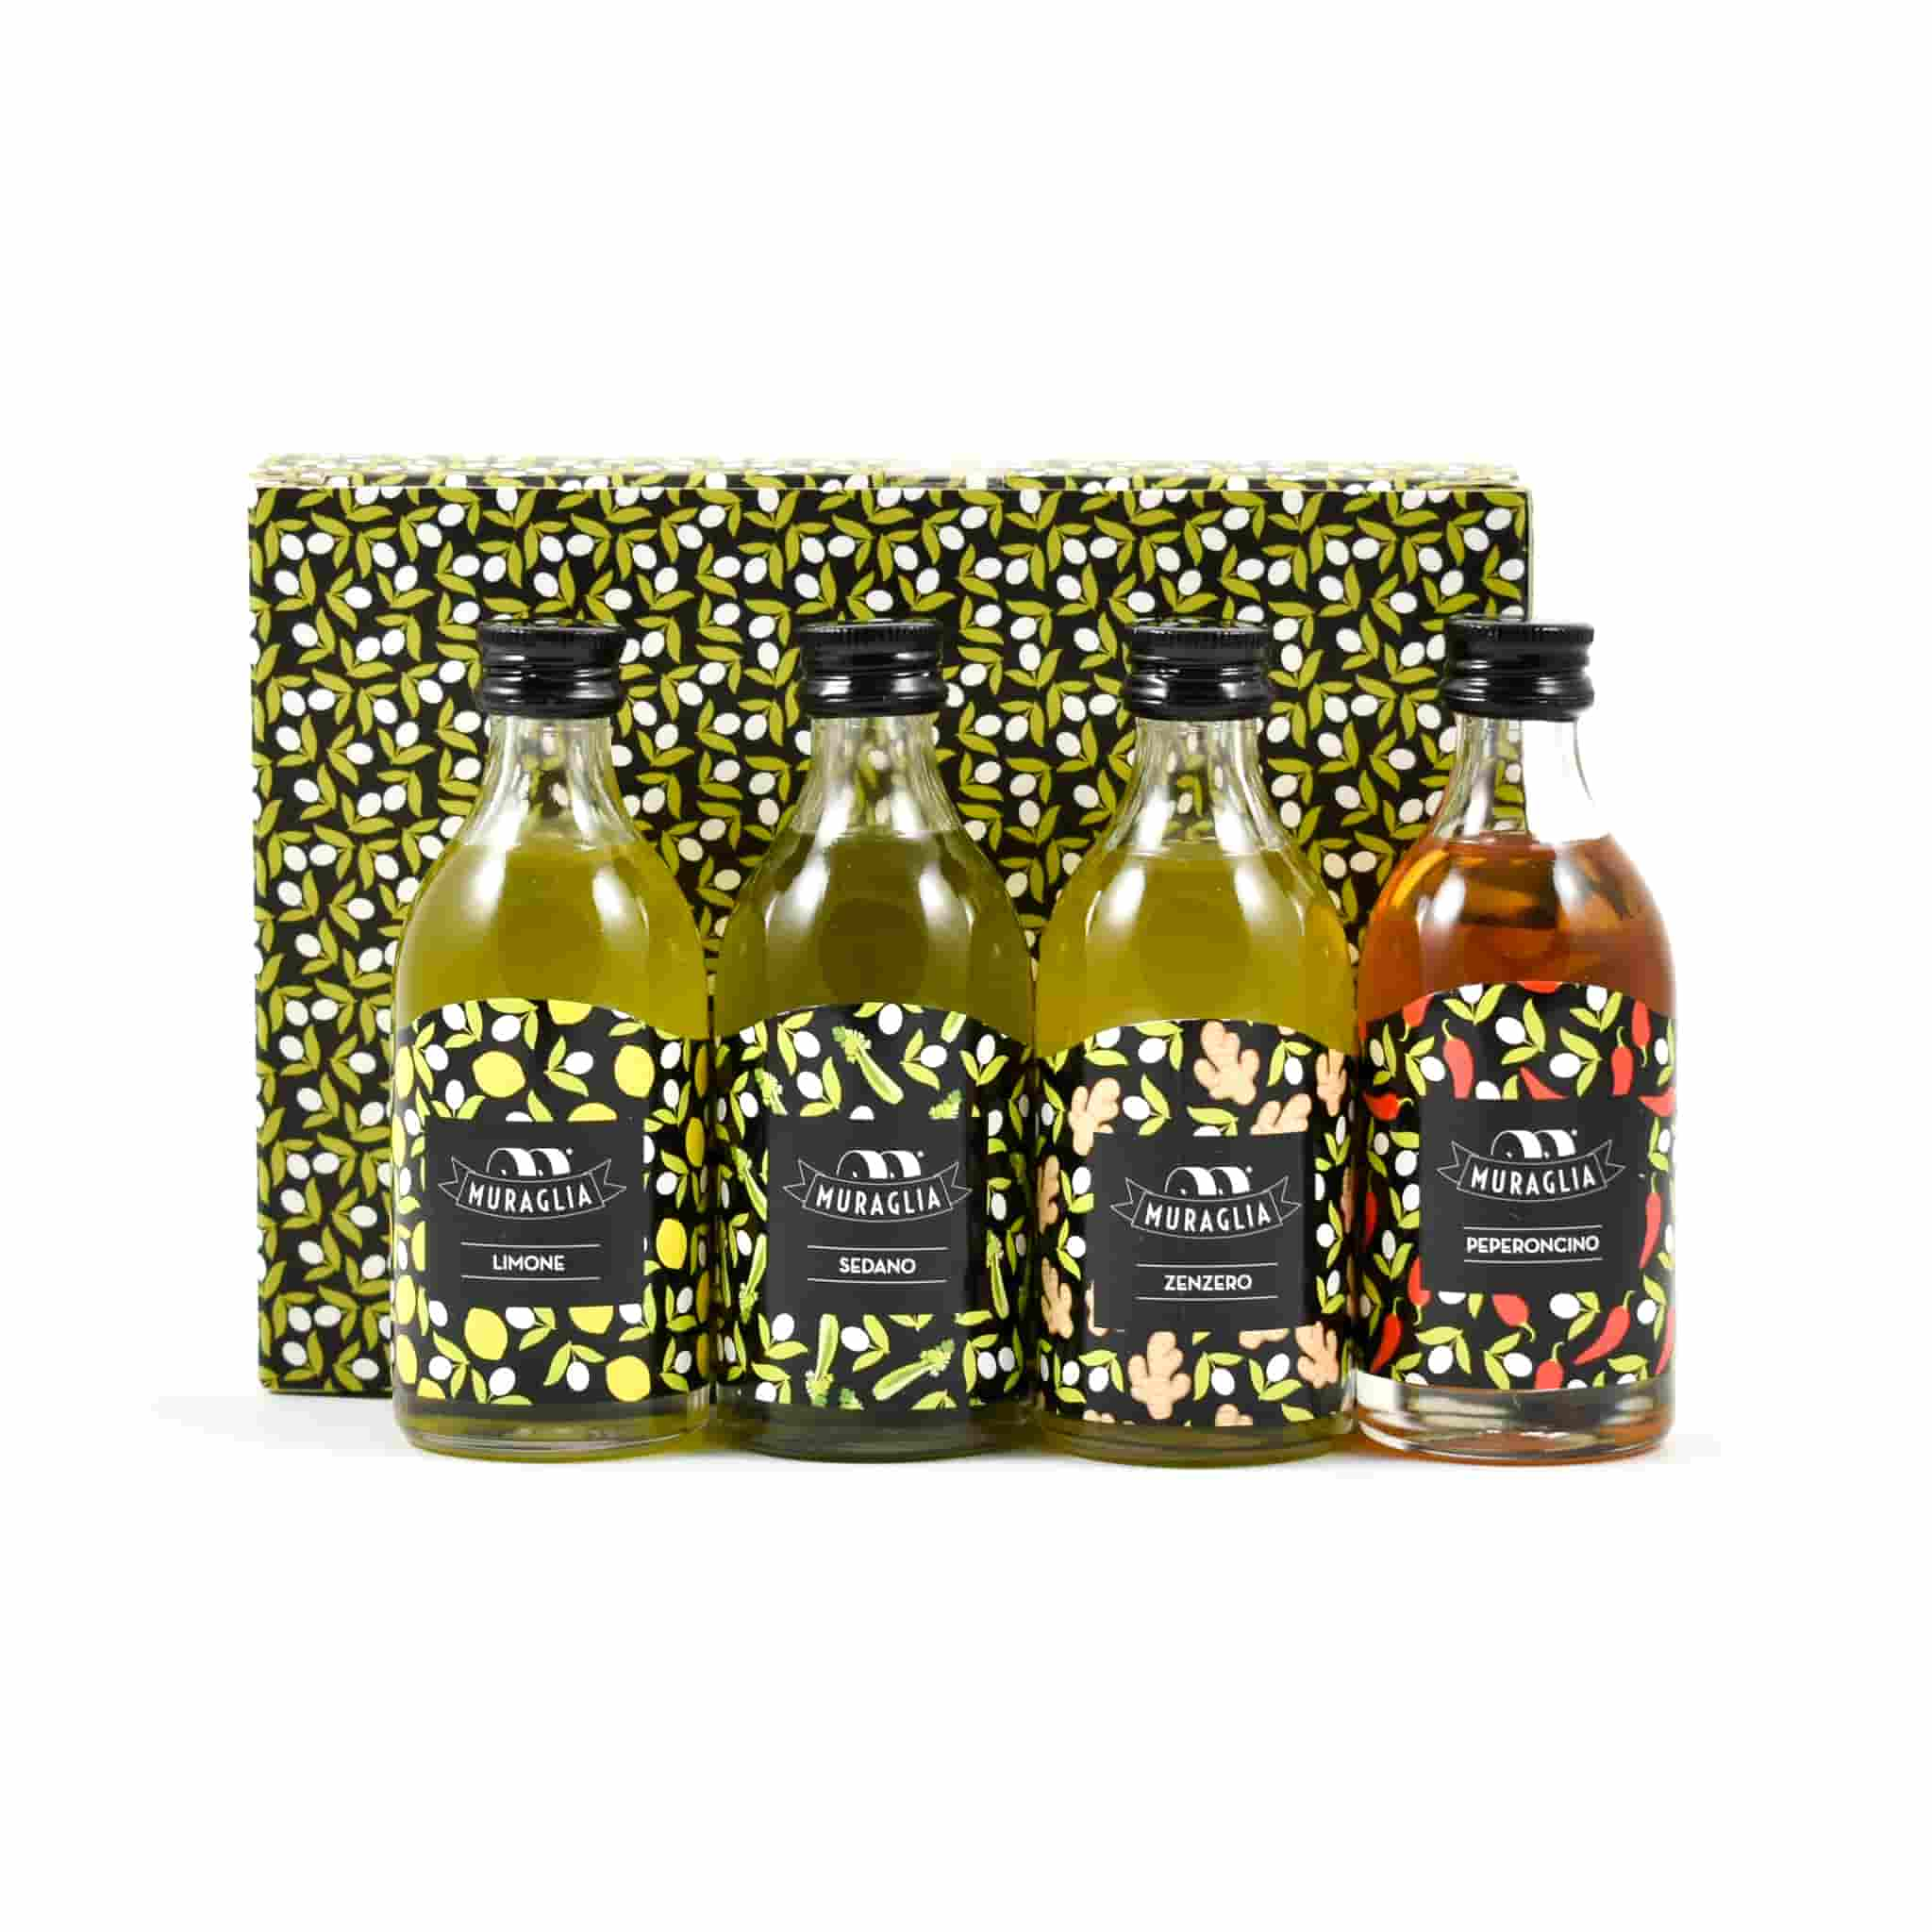 Frantoio Muraglia Aromatic Olive Oil Selection